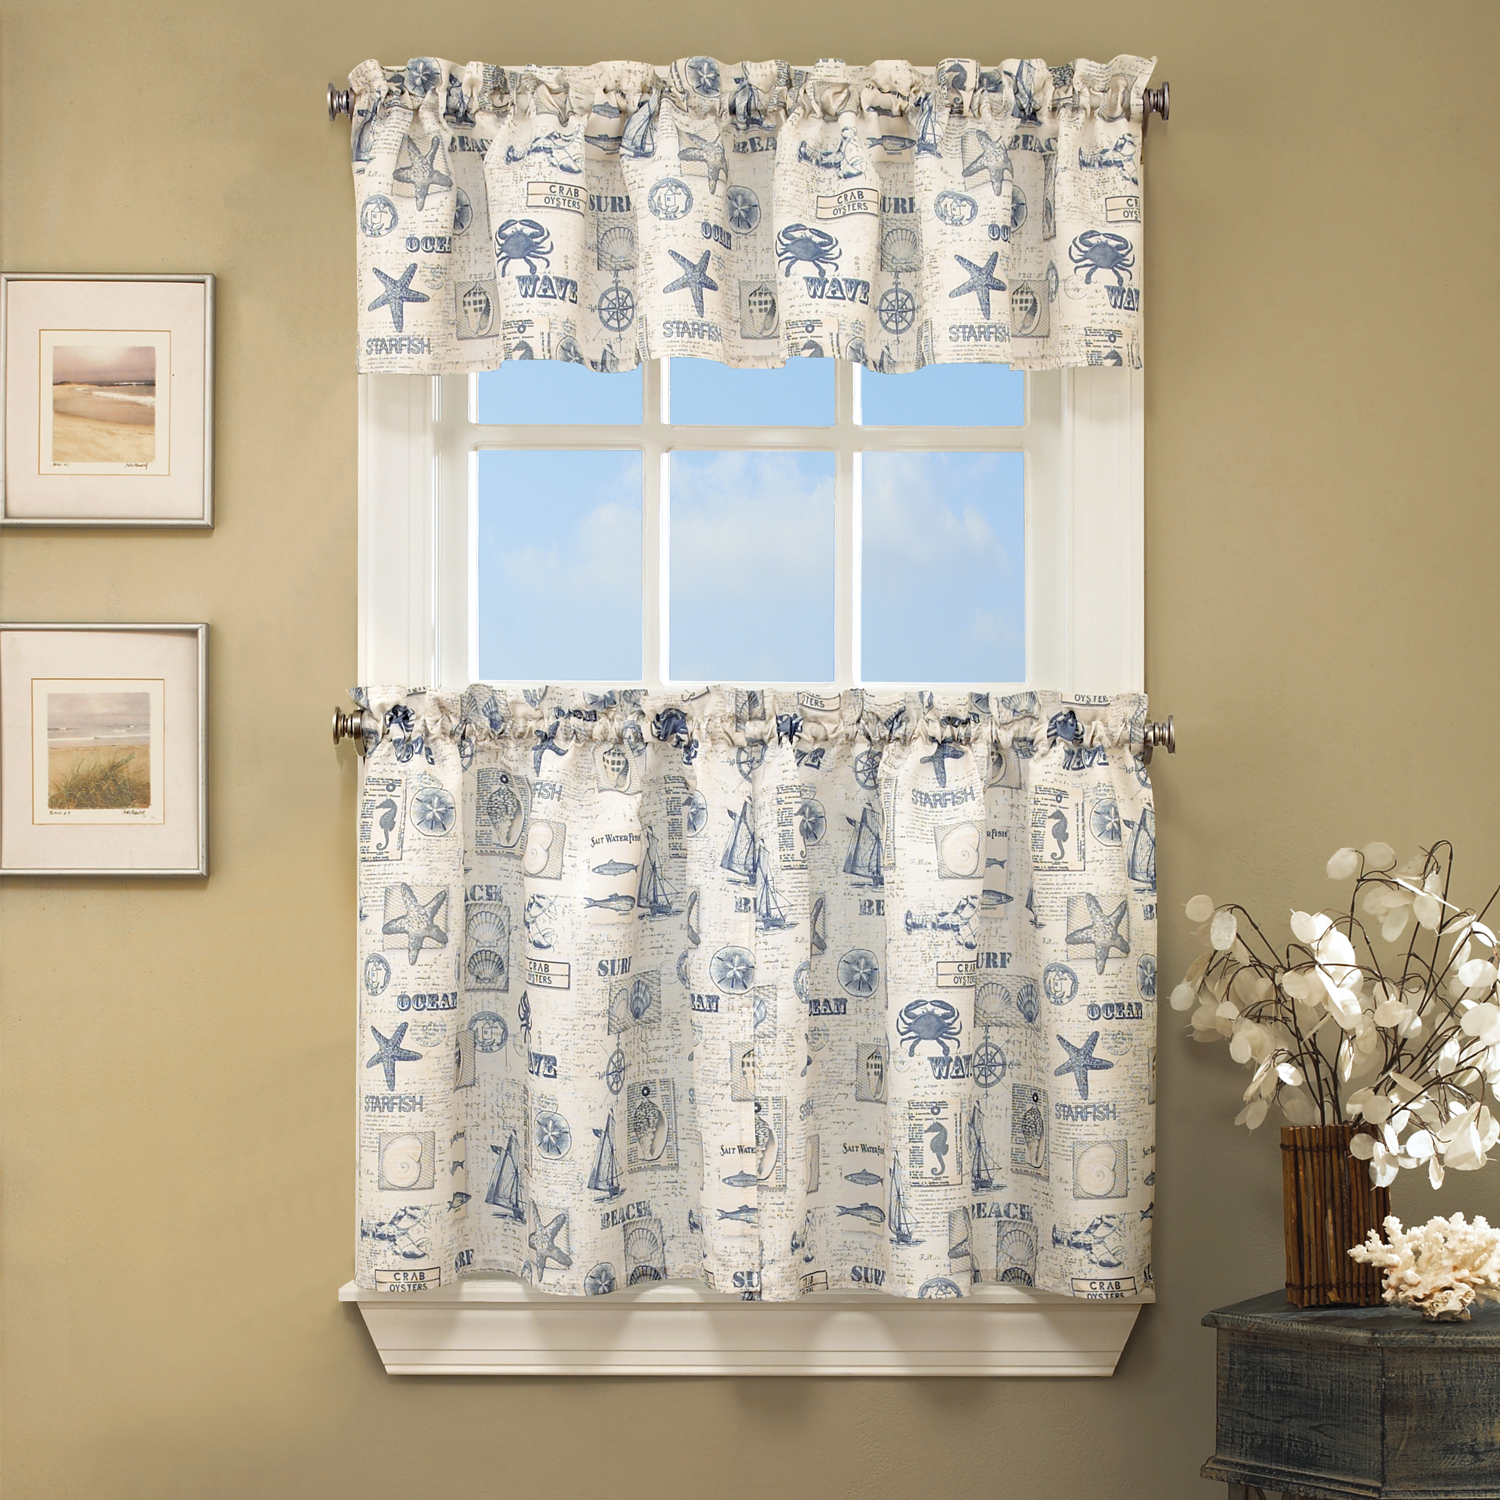 Details Aboutthe Sea Printed Ocean Beach Images Kitchen Curtains Tiers Or Valance Inside Coastal Tier And Valance Window Curtain Sets (View 13 of 20)